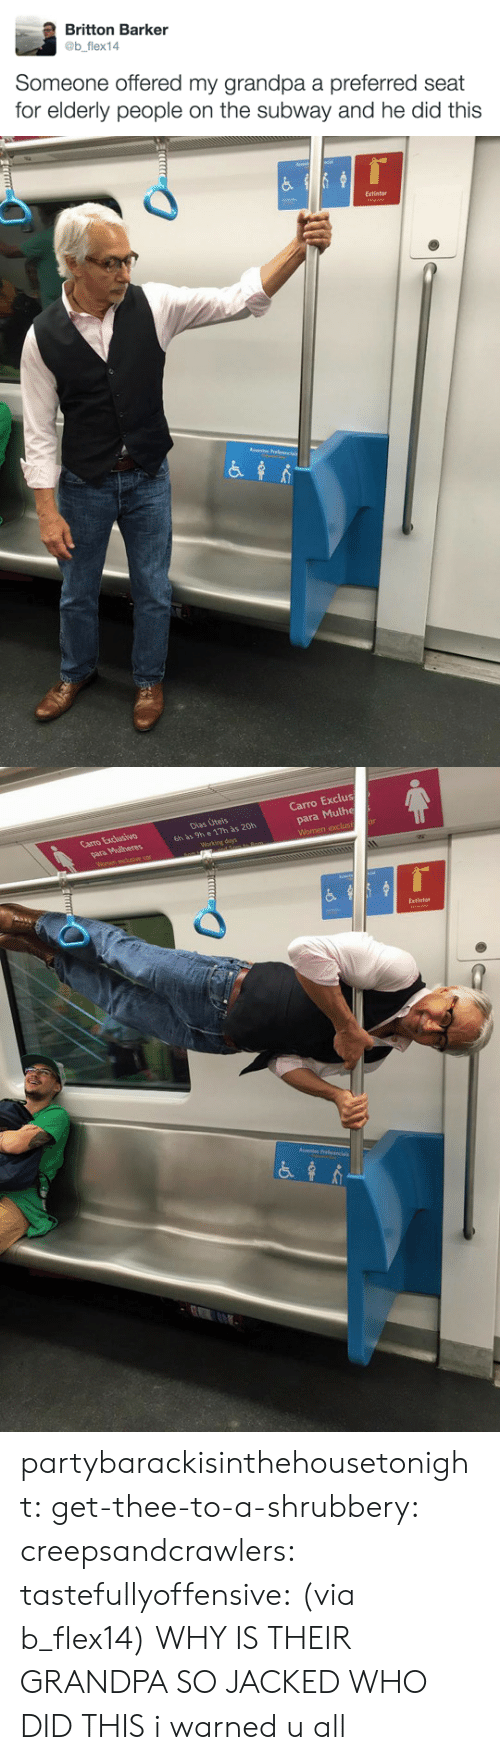 Bilbo, Subway, and Tumblr: Britton Barker  @b flex14  Someone offered my grandpa a preferred seat  for elderly people on the subway and he did this   Extintor   Carro Exclus  para Mulhe  Carro Excusivo  Dias Úteis  6h às 9h e 17h às 20h  Extintor partybarackisinthehousetonight:  get-thee-to-a-shrubbery:  creepsandcrawlers:  tastefullyoffensive:  (via b_flex14)  WHY IS THEIR GRANDPA SO JACKED WHO DID THIS    i warned u all